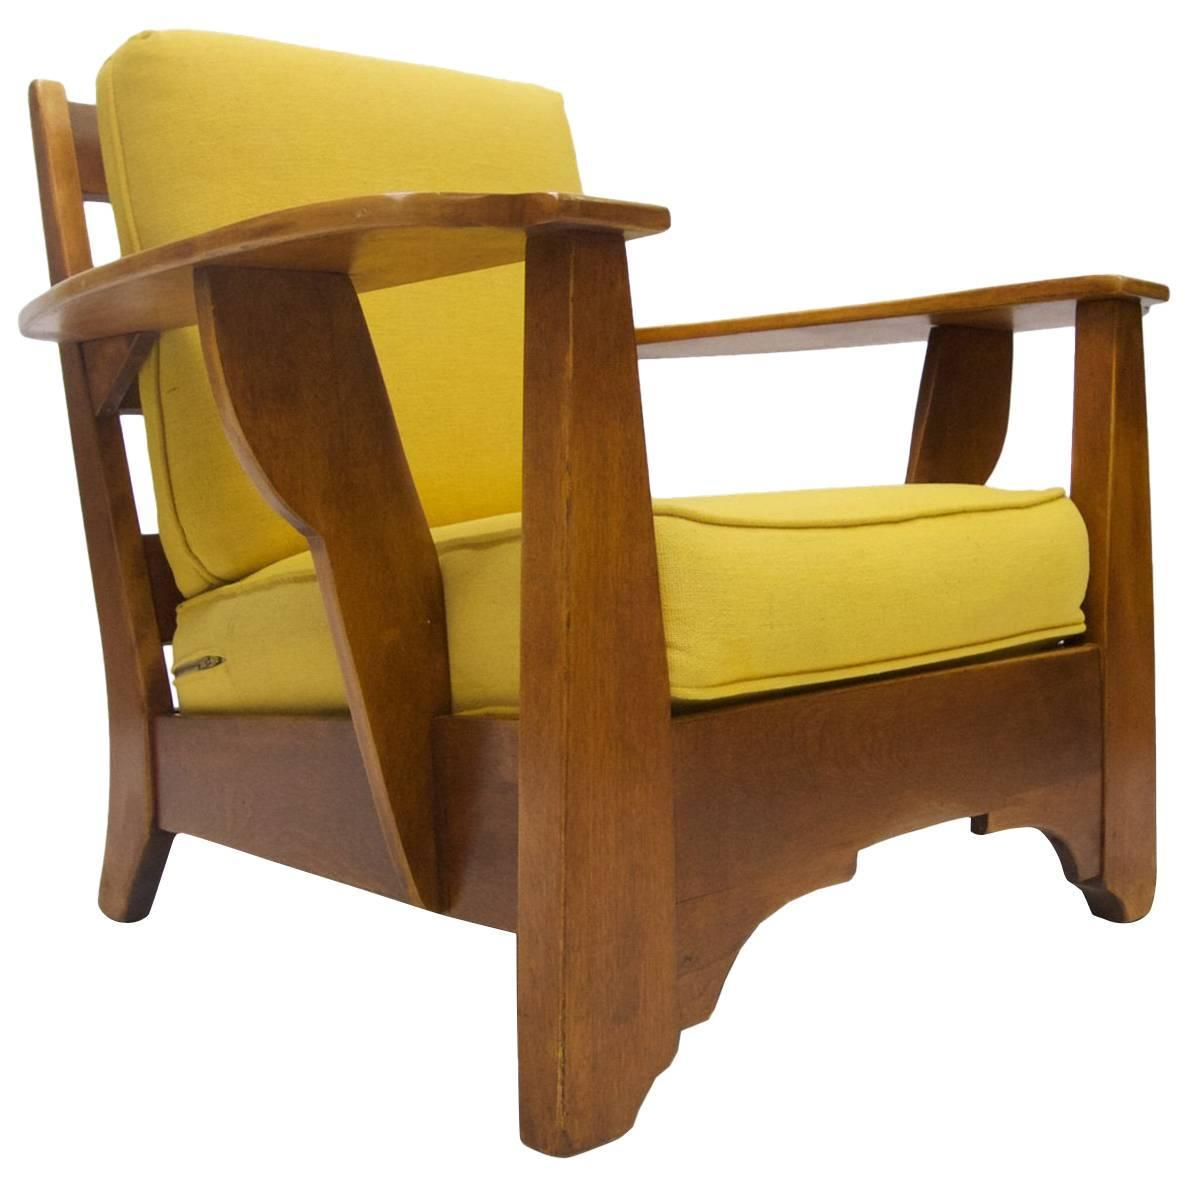 Great Cushman Wide Paddle Arm Lounge Chair In Rock Maple By Herman De Vries For  Sale At 1stdibs